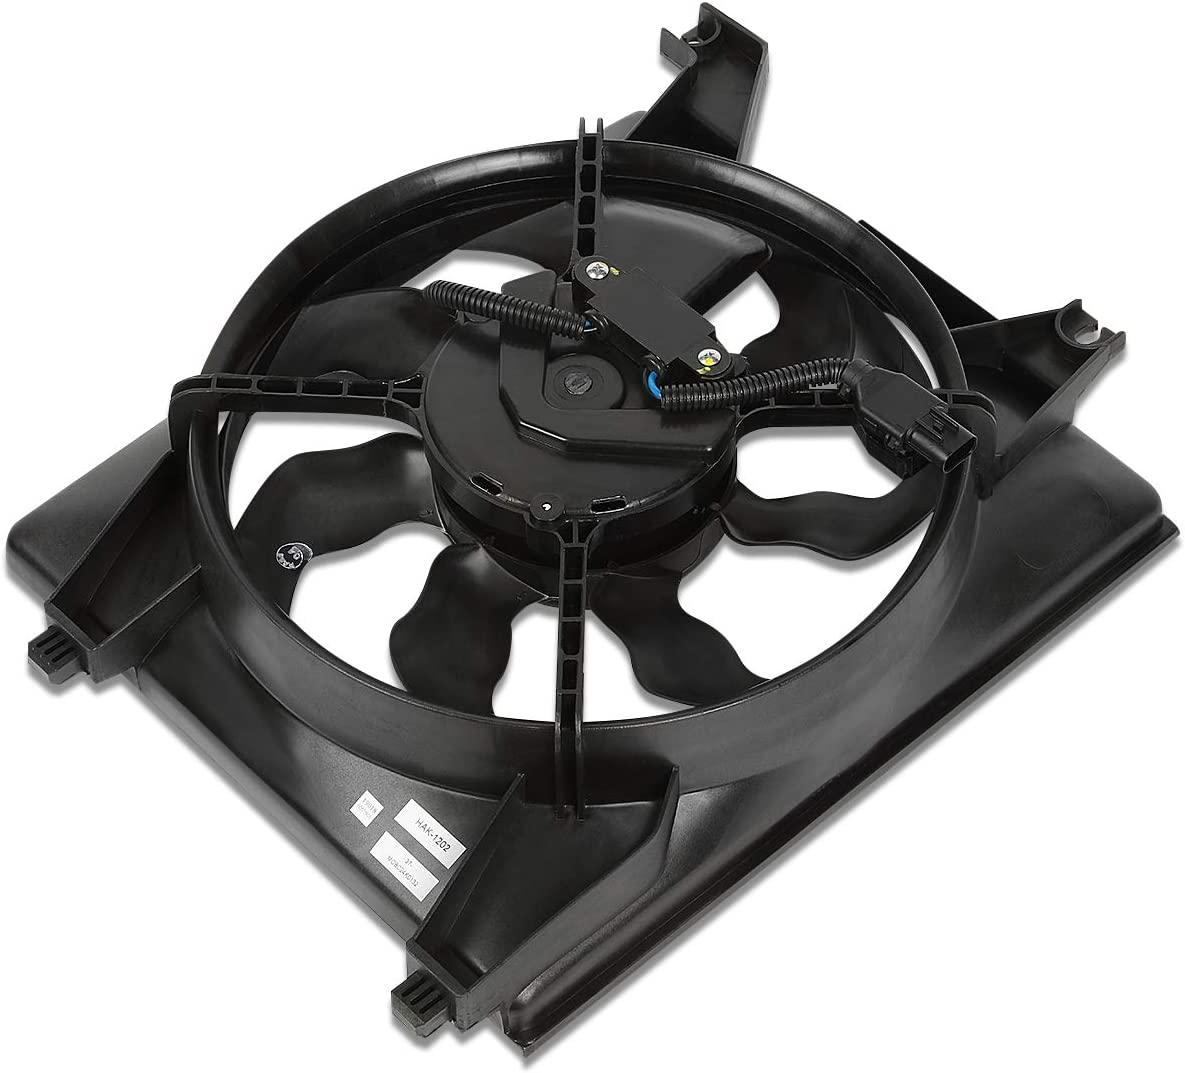 HY3120100 OE Style AC Condenser Cooling Fan Assembly Replacement for Accent 06-11